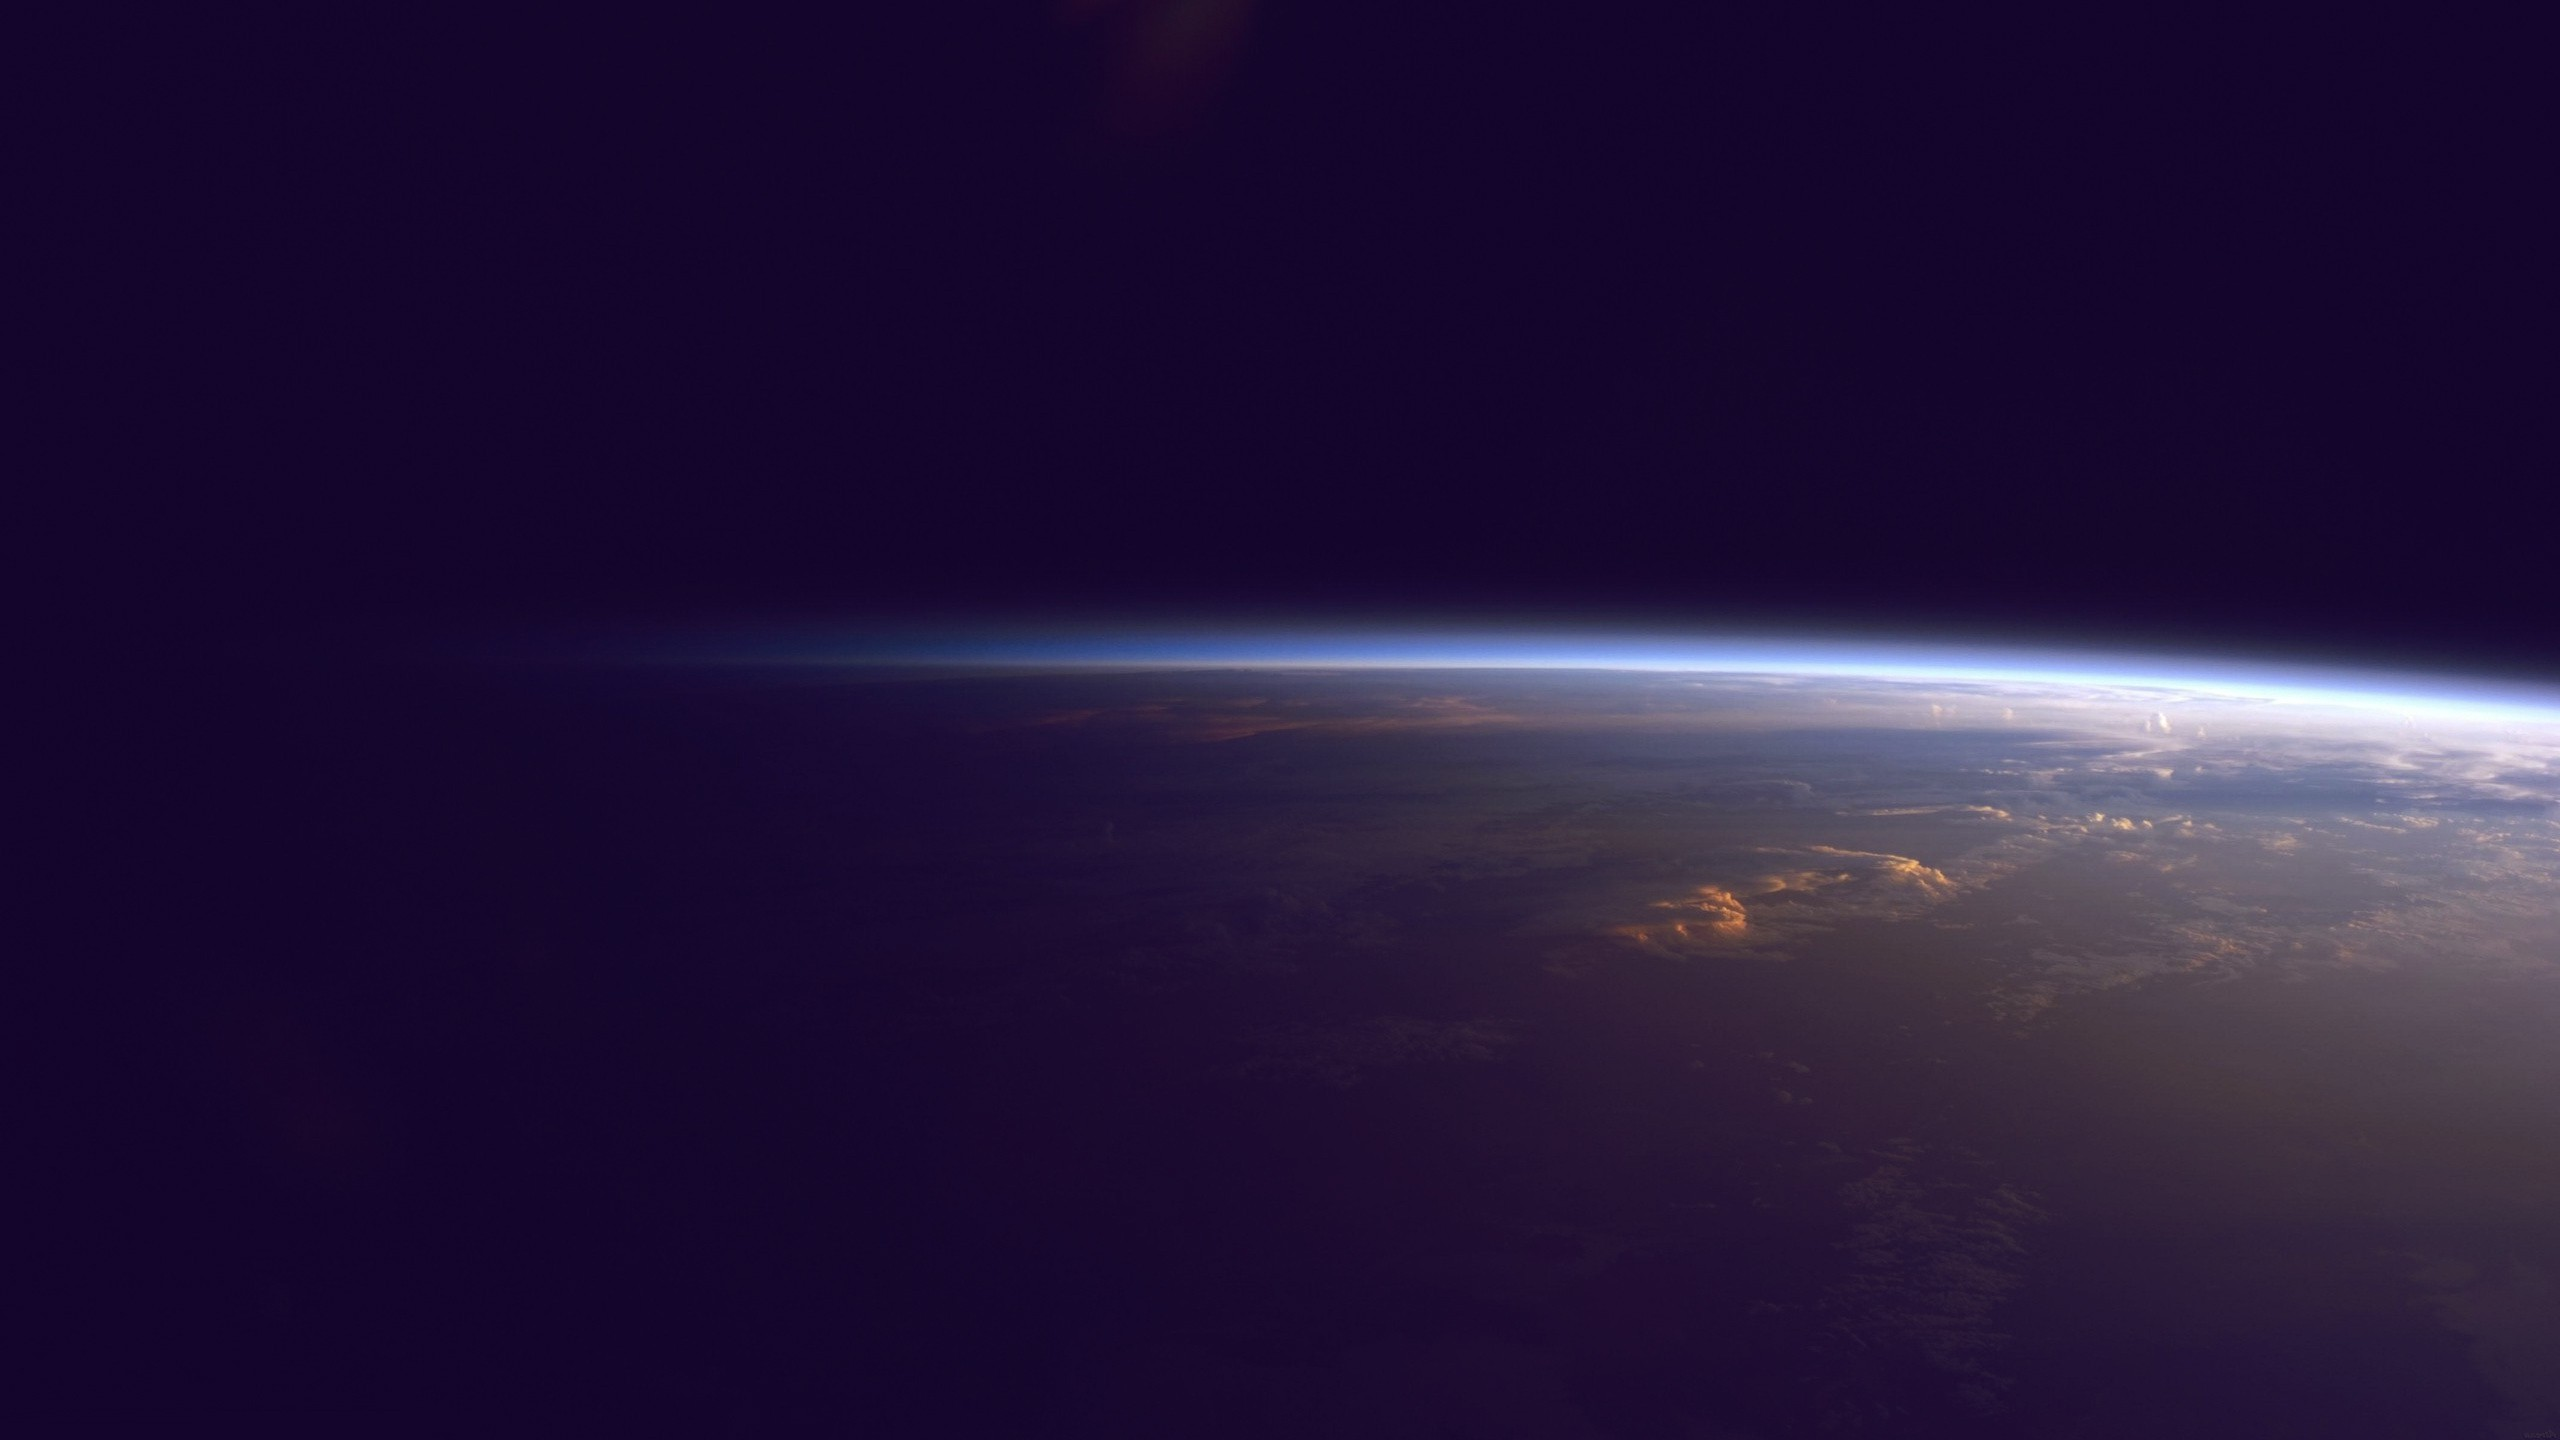 2560x1440 Earth Horizon from Outer Space YouTube Channel Cover 2560x1440